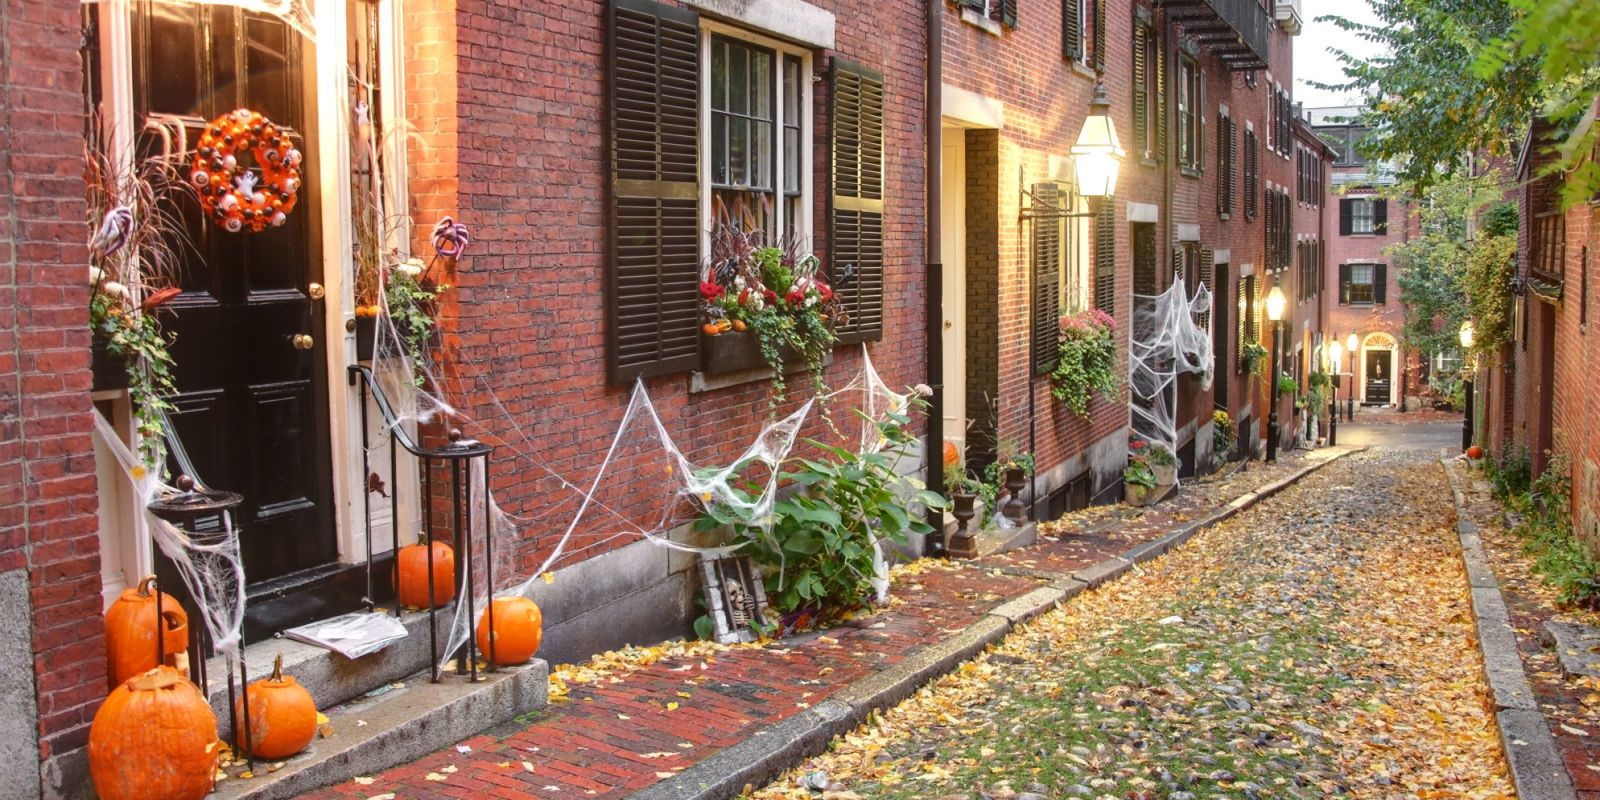 The 10 Best Small Towns to Visit for Halloween